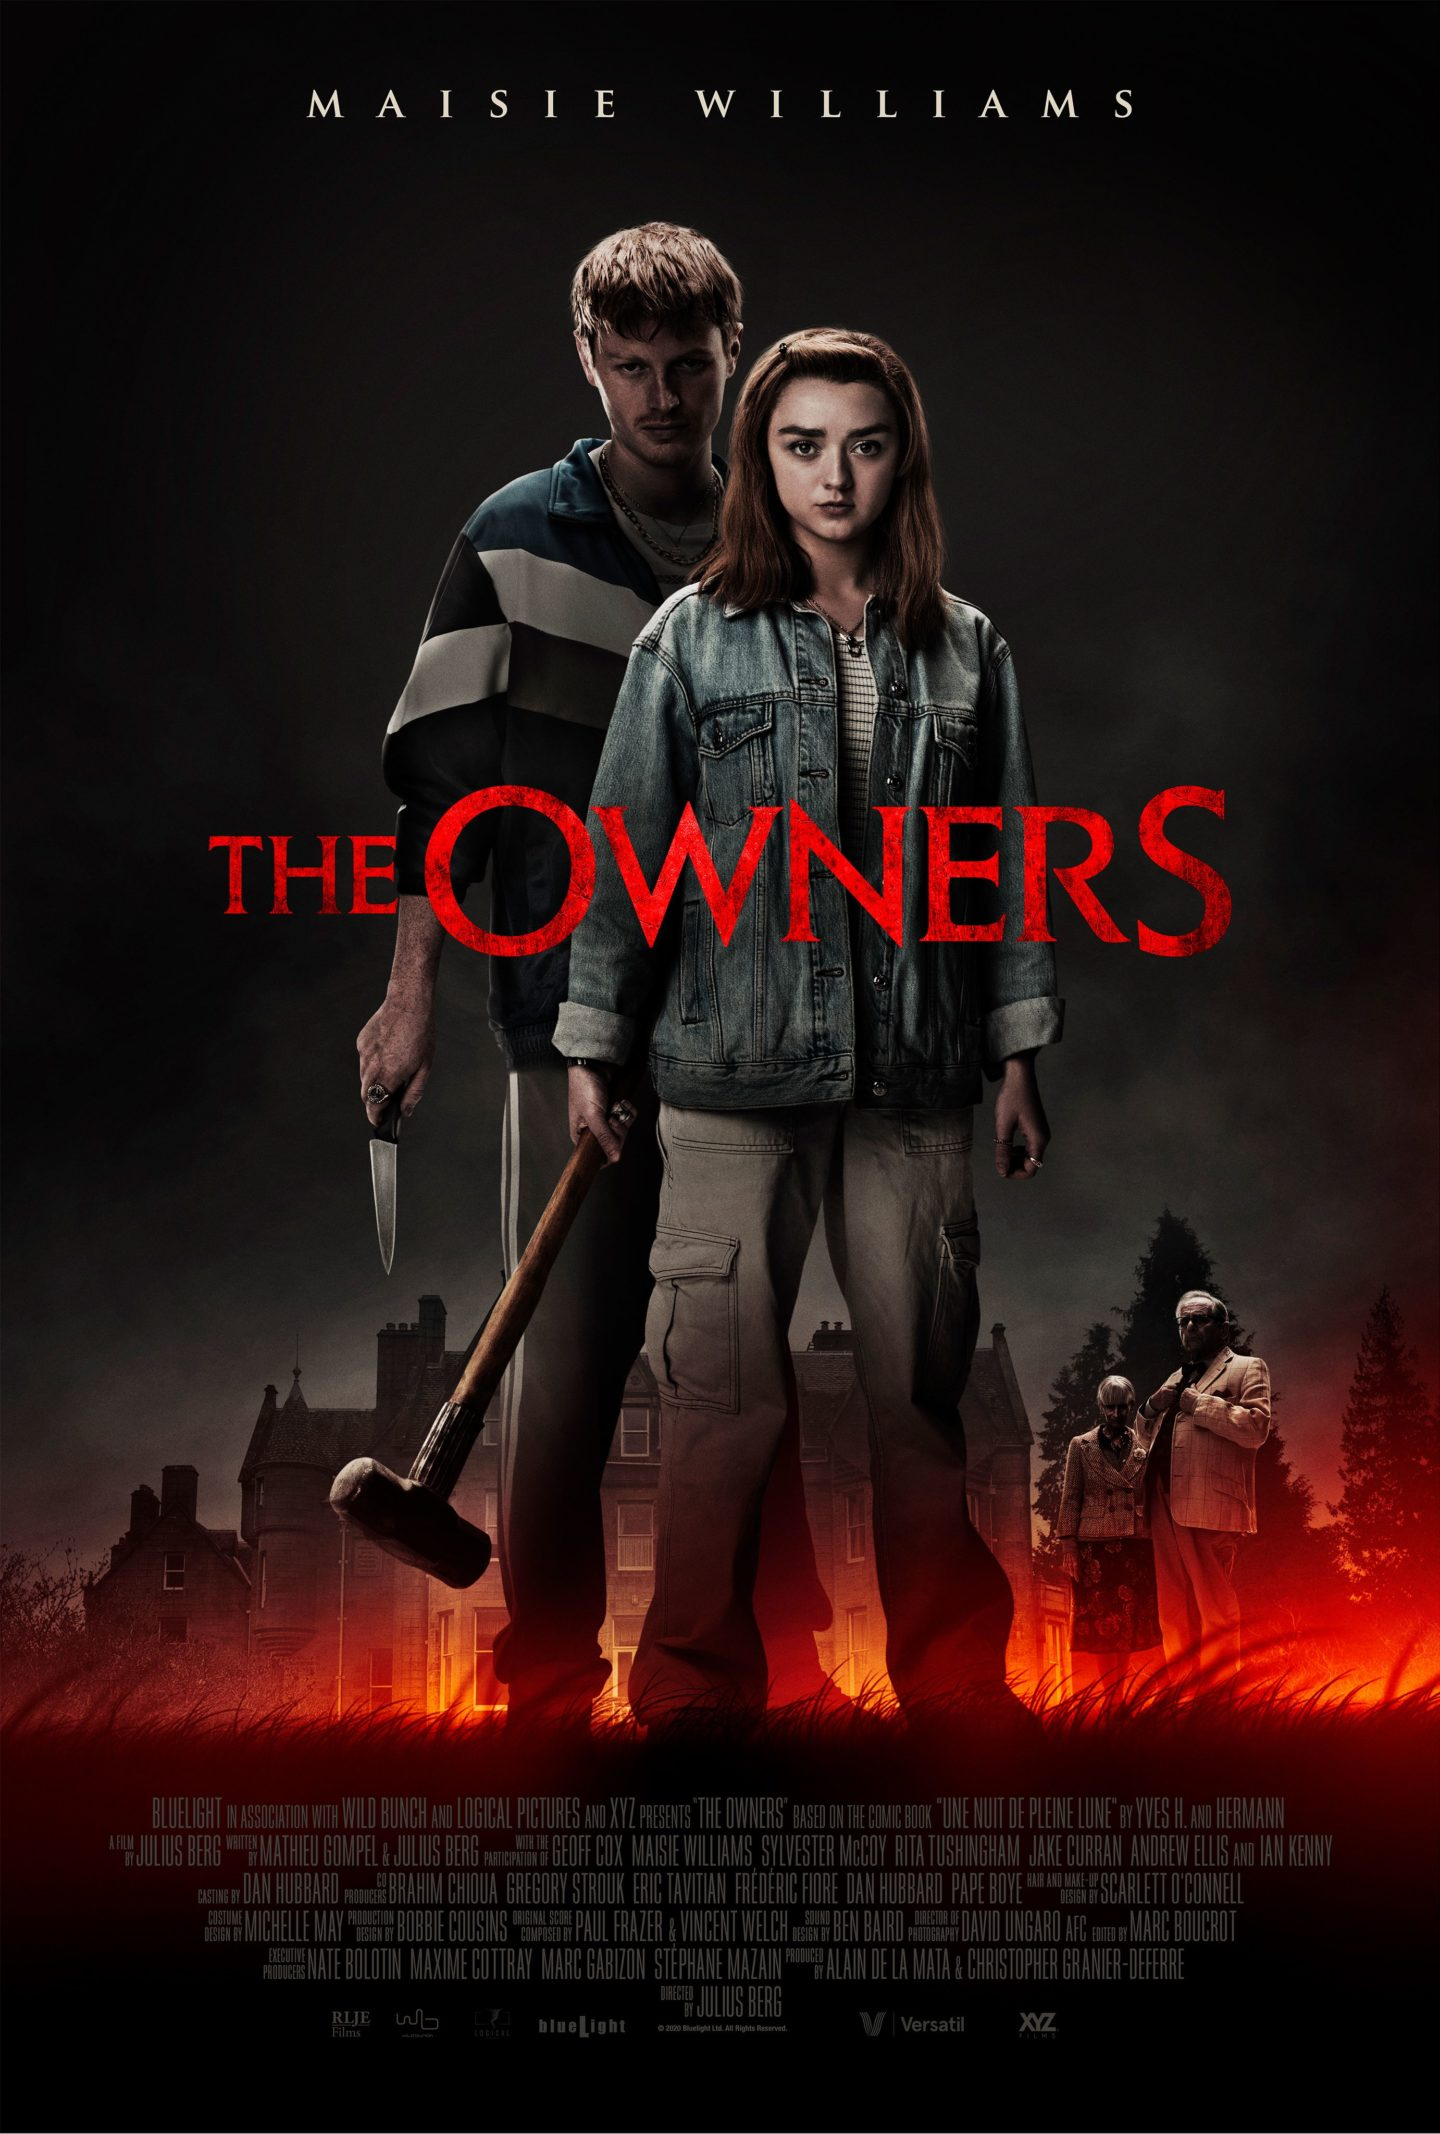 """[Trailer] """"Game of Thrones""""-Star Maisie Williams im Home-Invasion Thriller """"The Owners"""""""